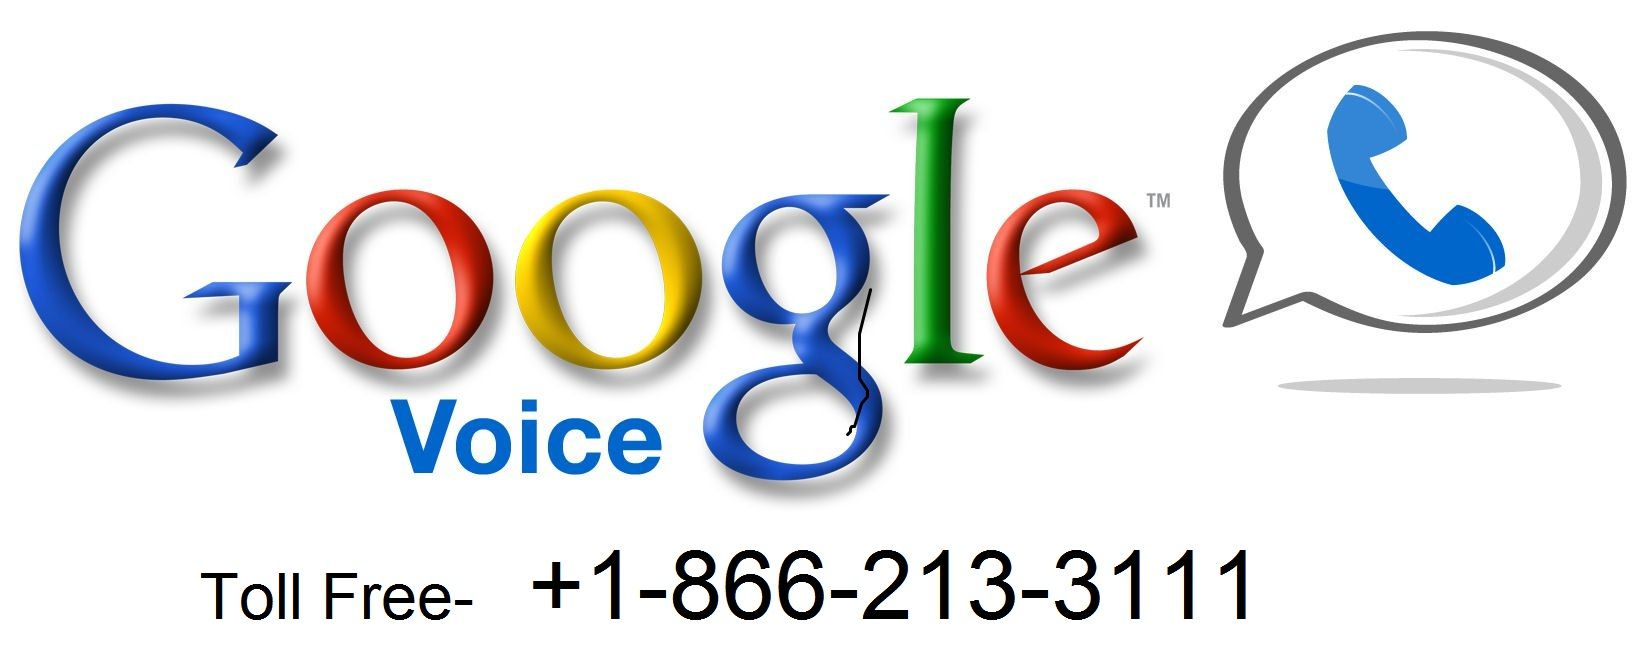 Google Voice Customer Service With Images Google Voice